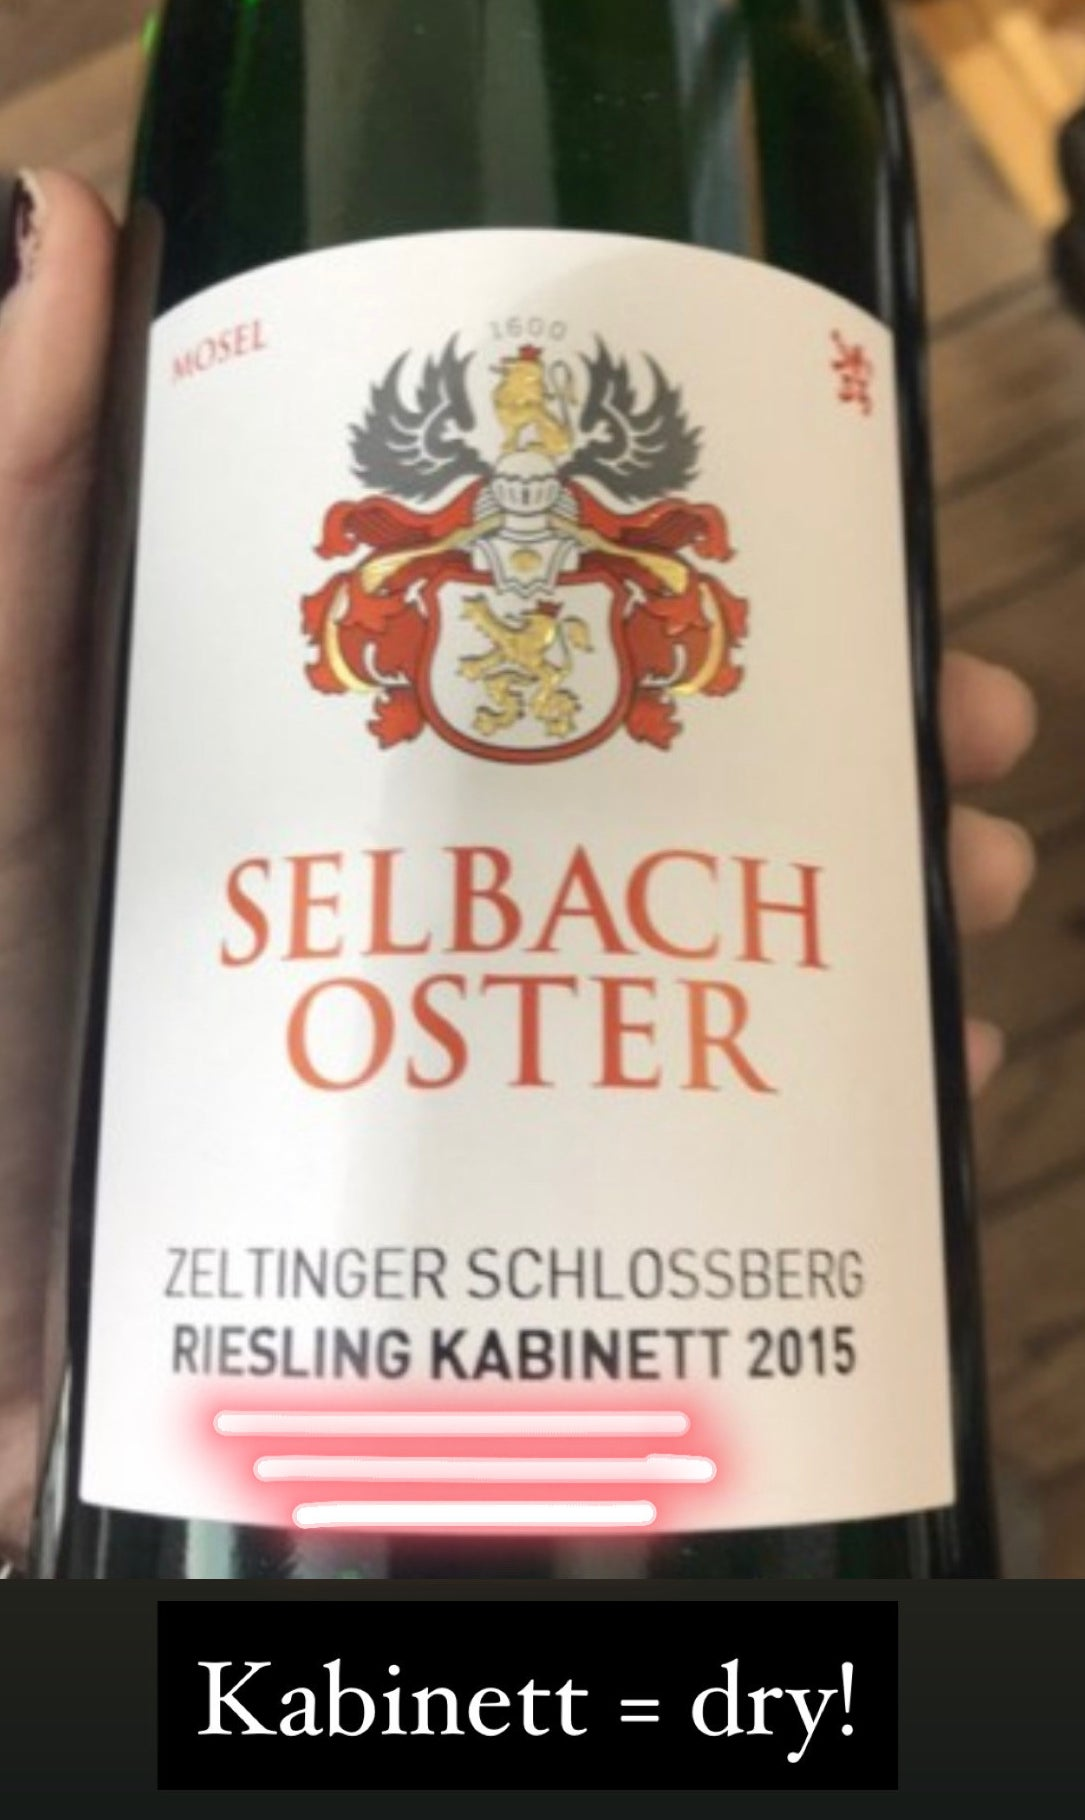 A bottle of Kabinett (dry) Riesling from Mosel, Germany.